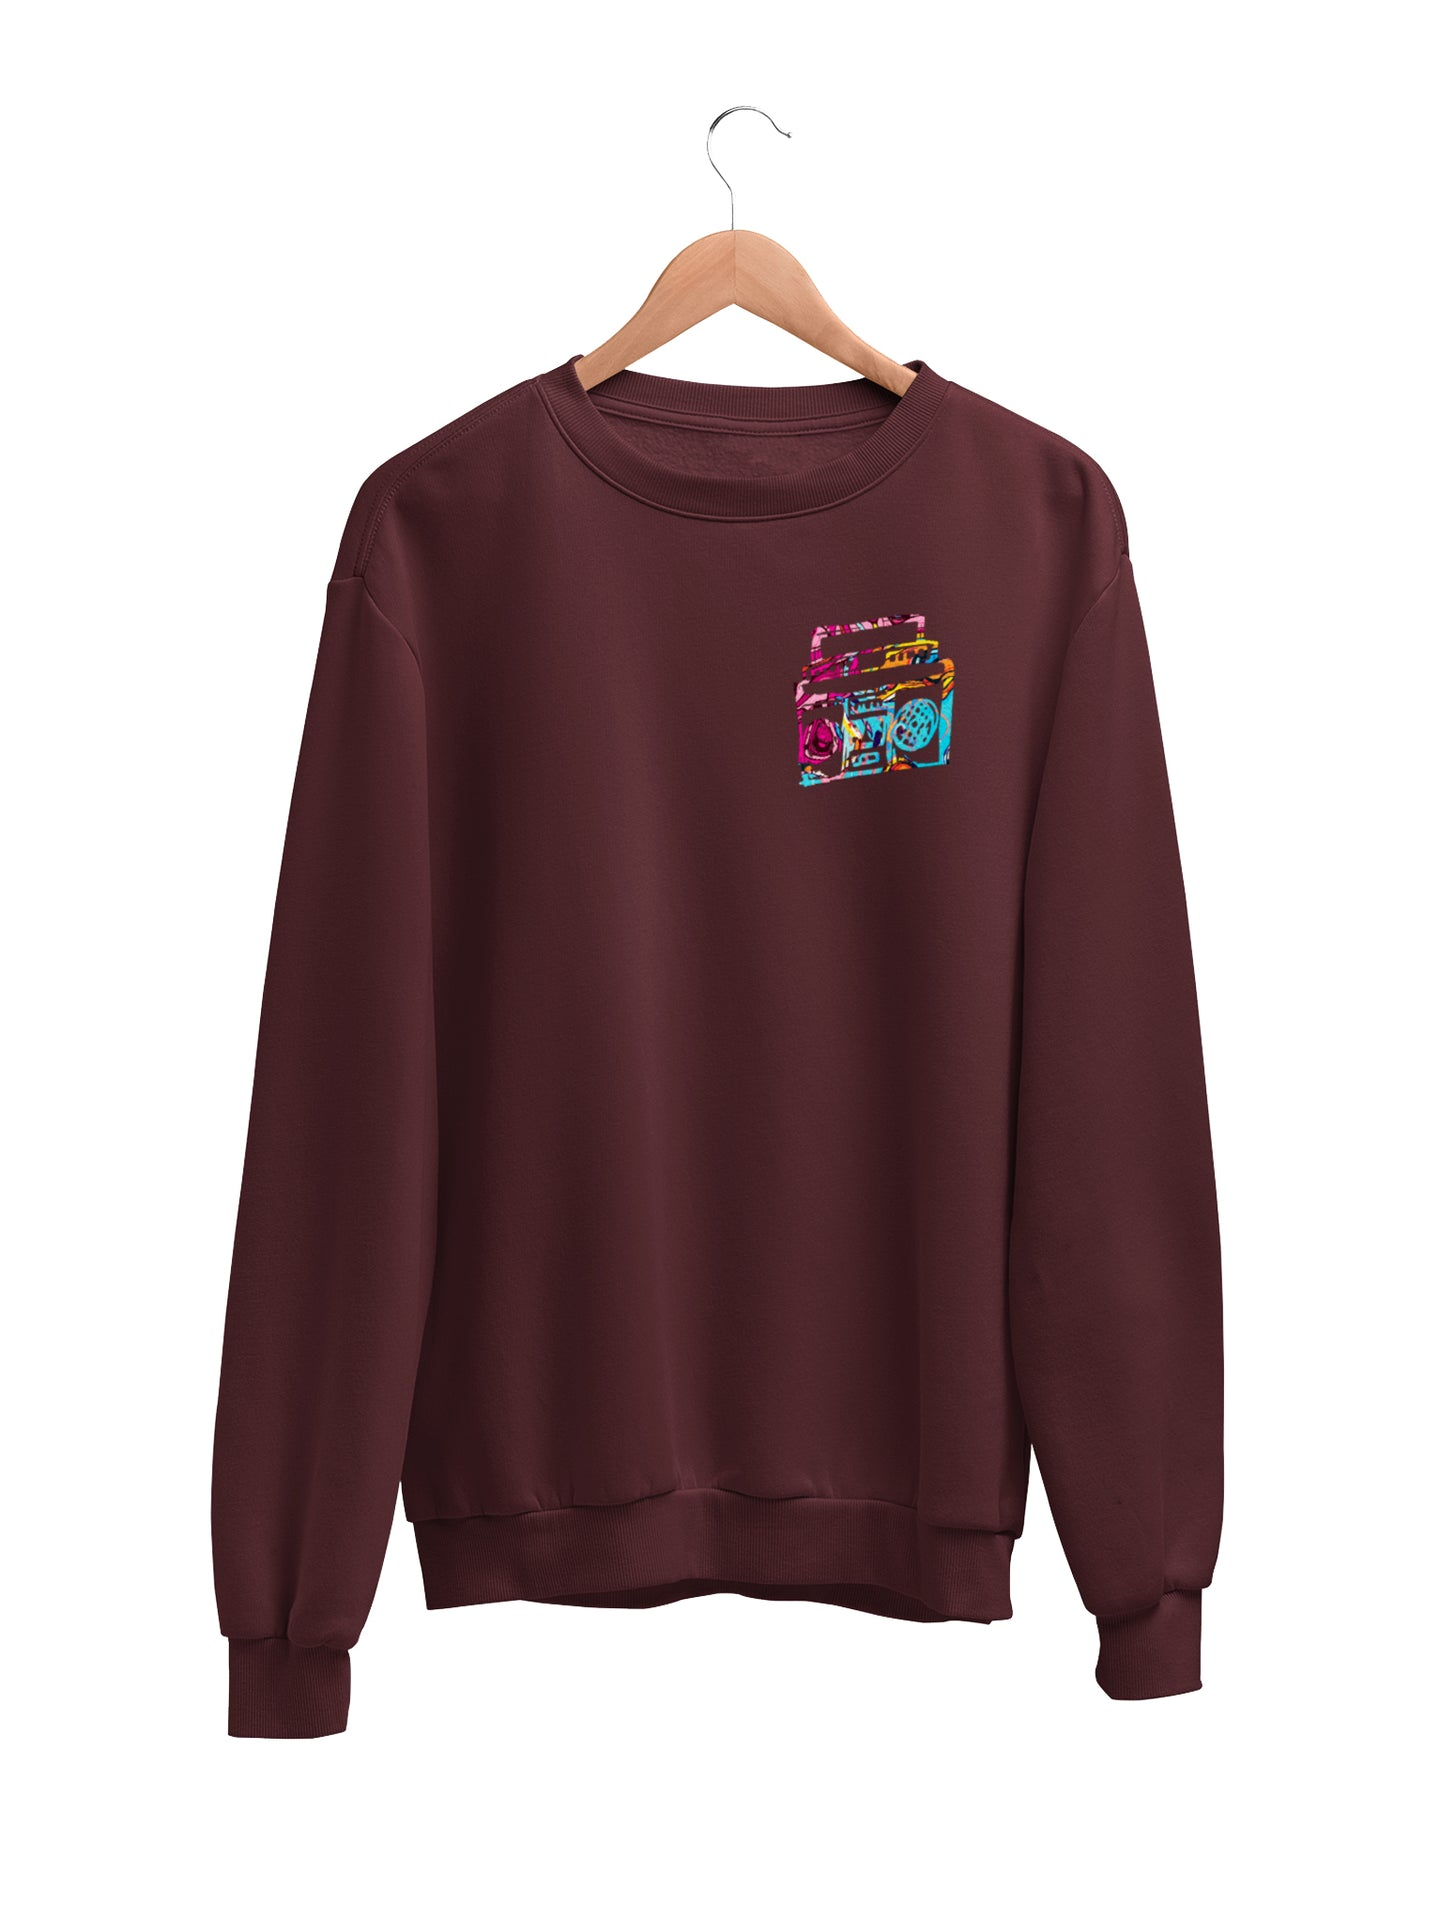 Sweatshirt with Small Boombox Motif